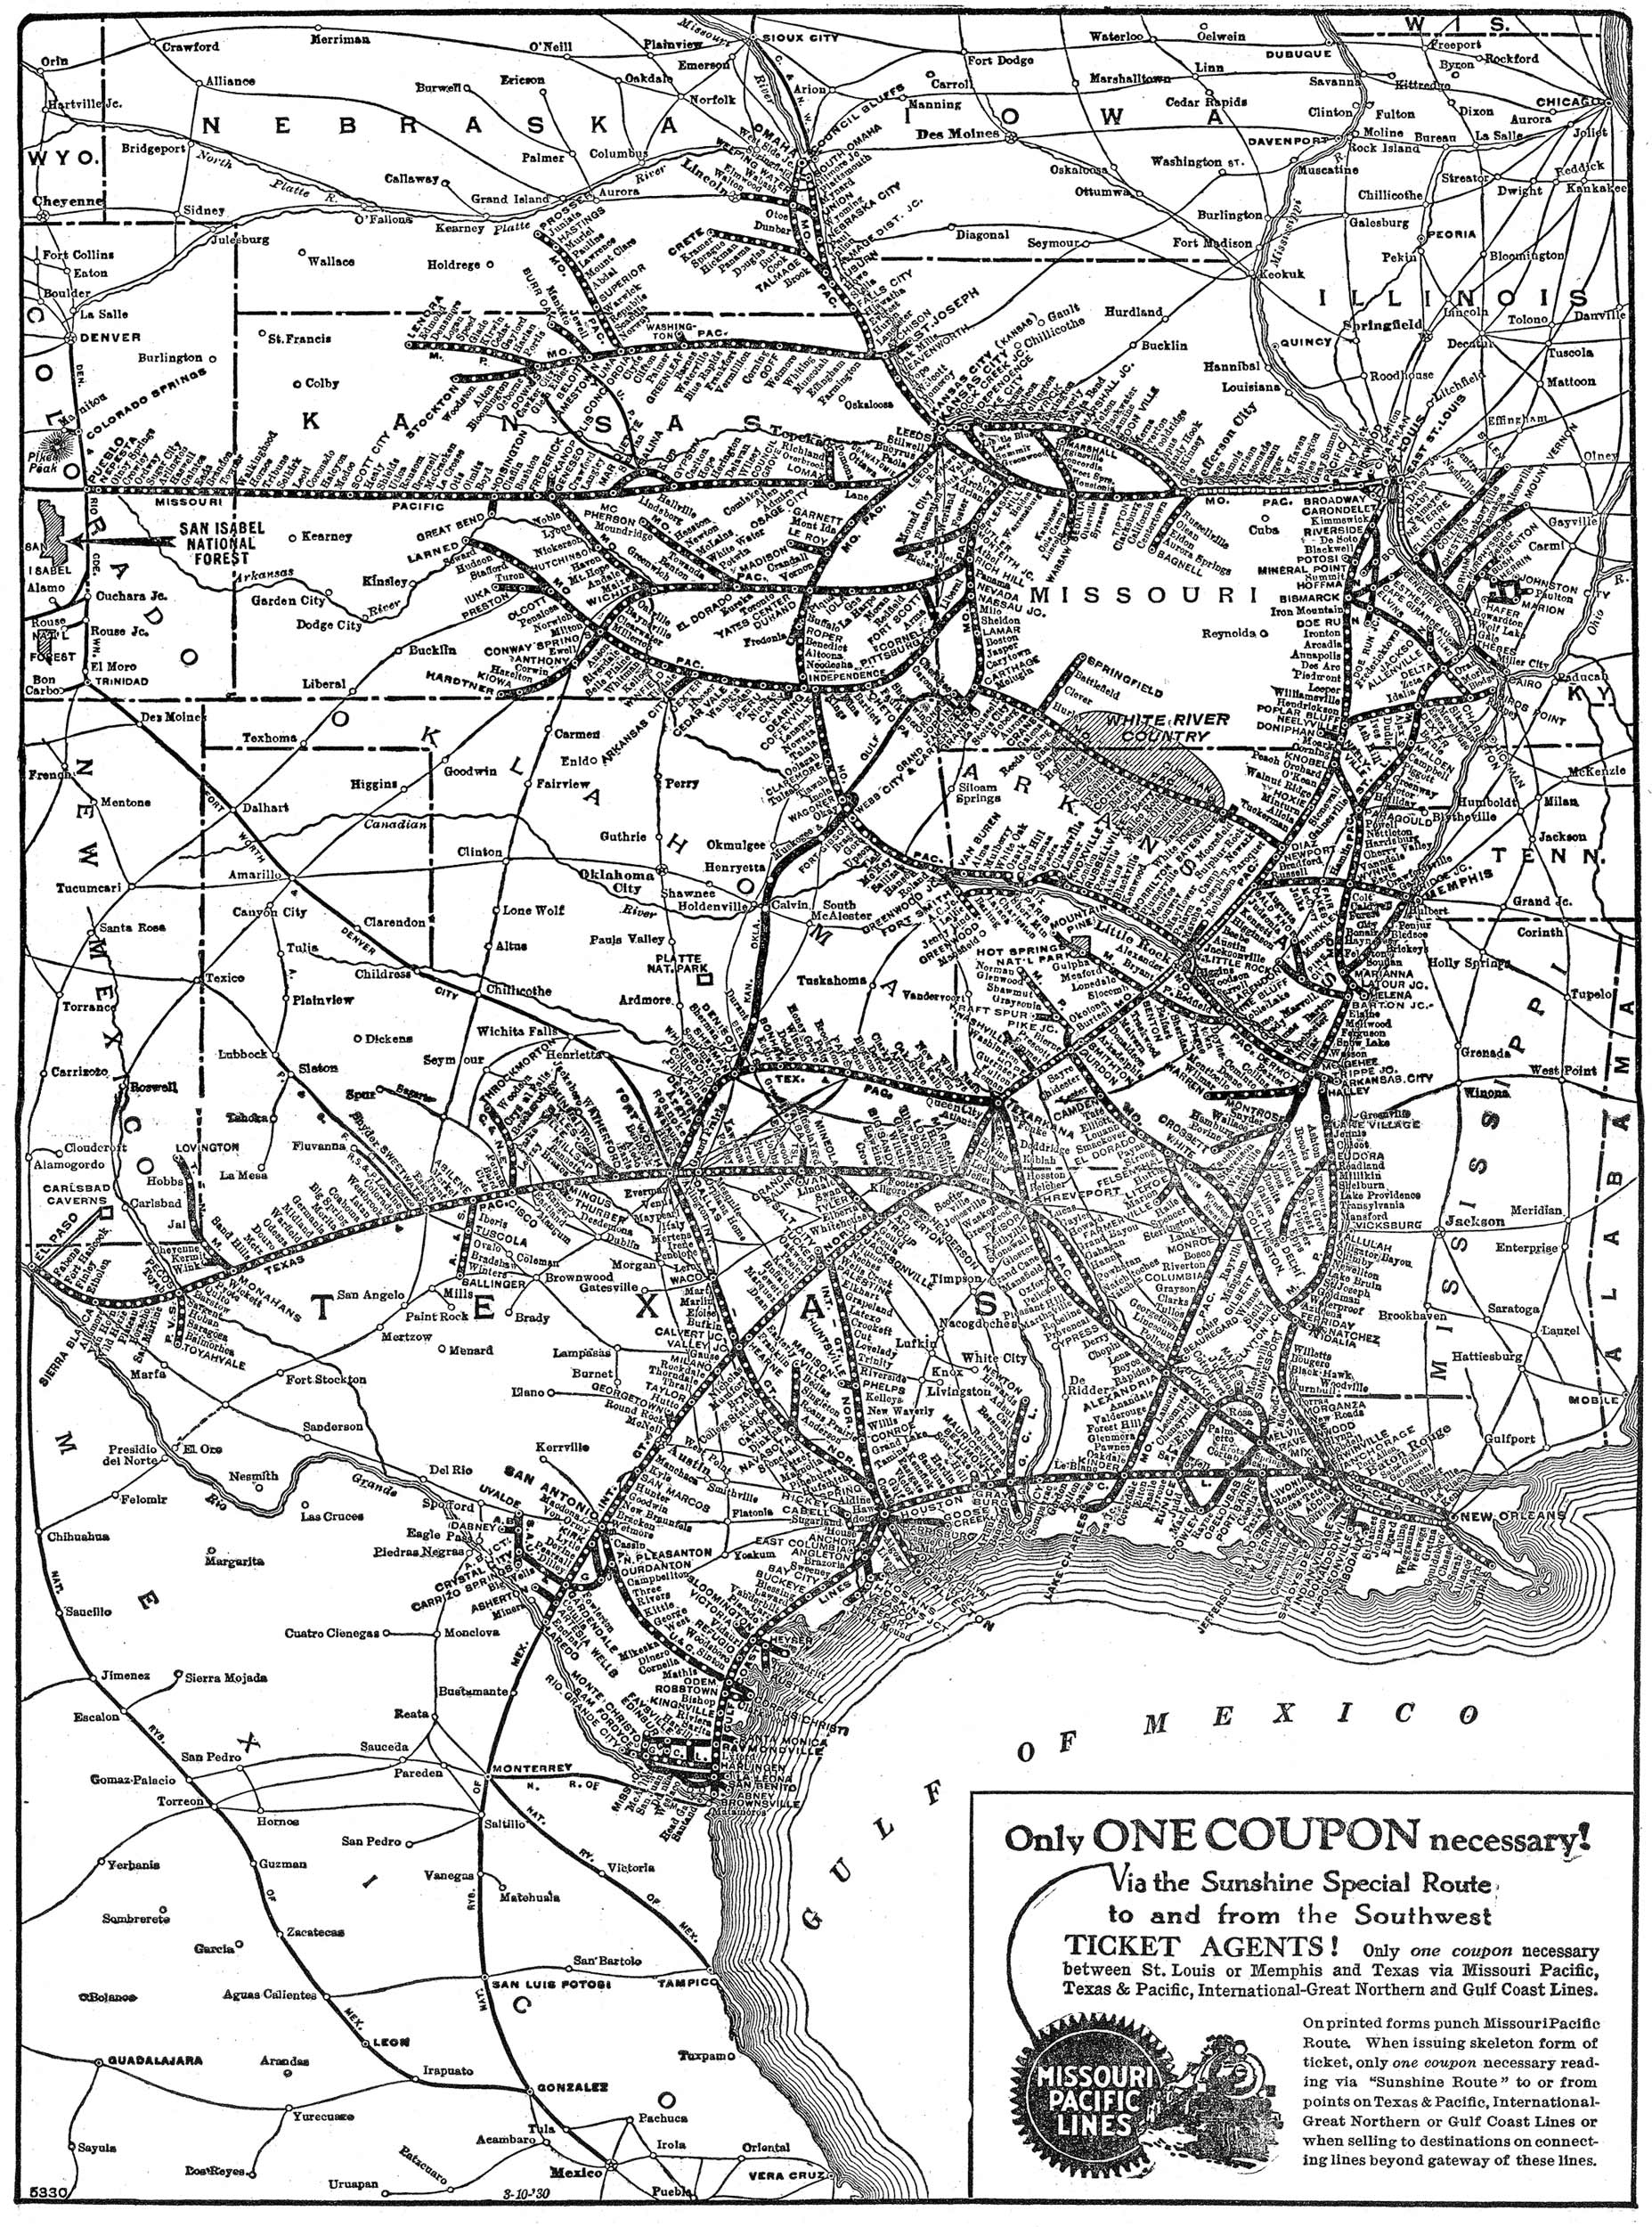 The Missouri Pacific Railroad The MoPac